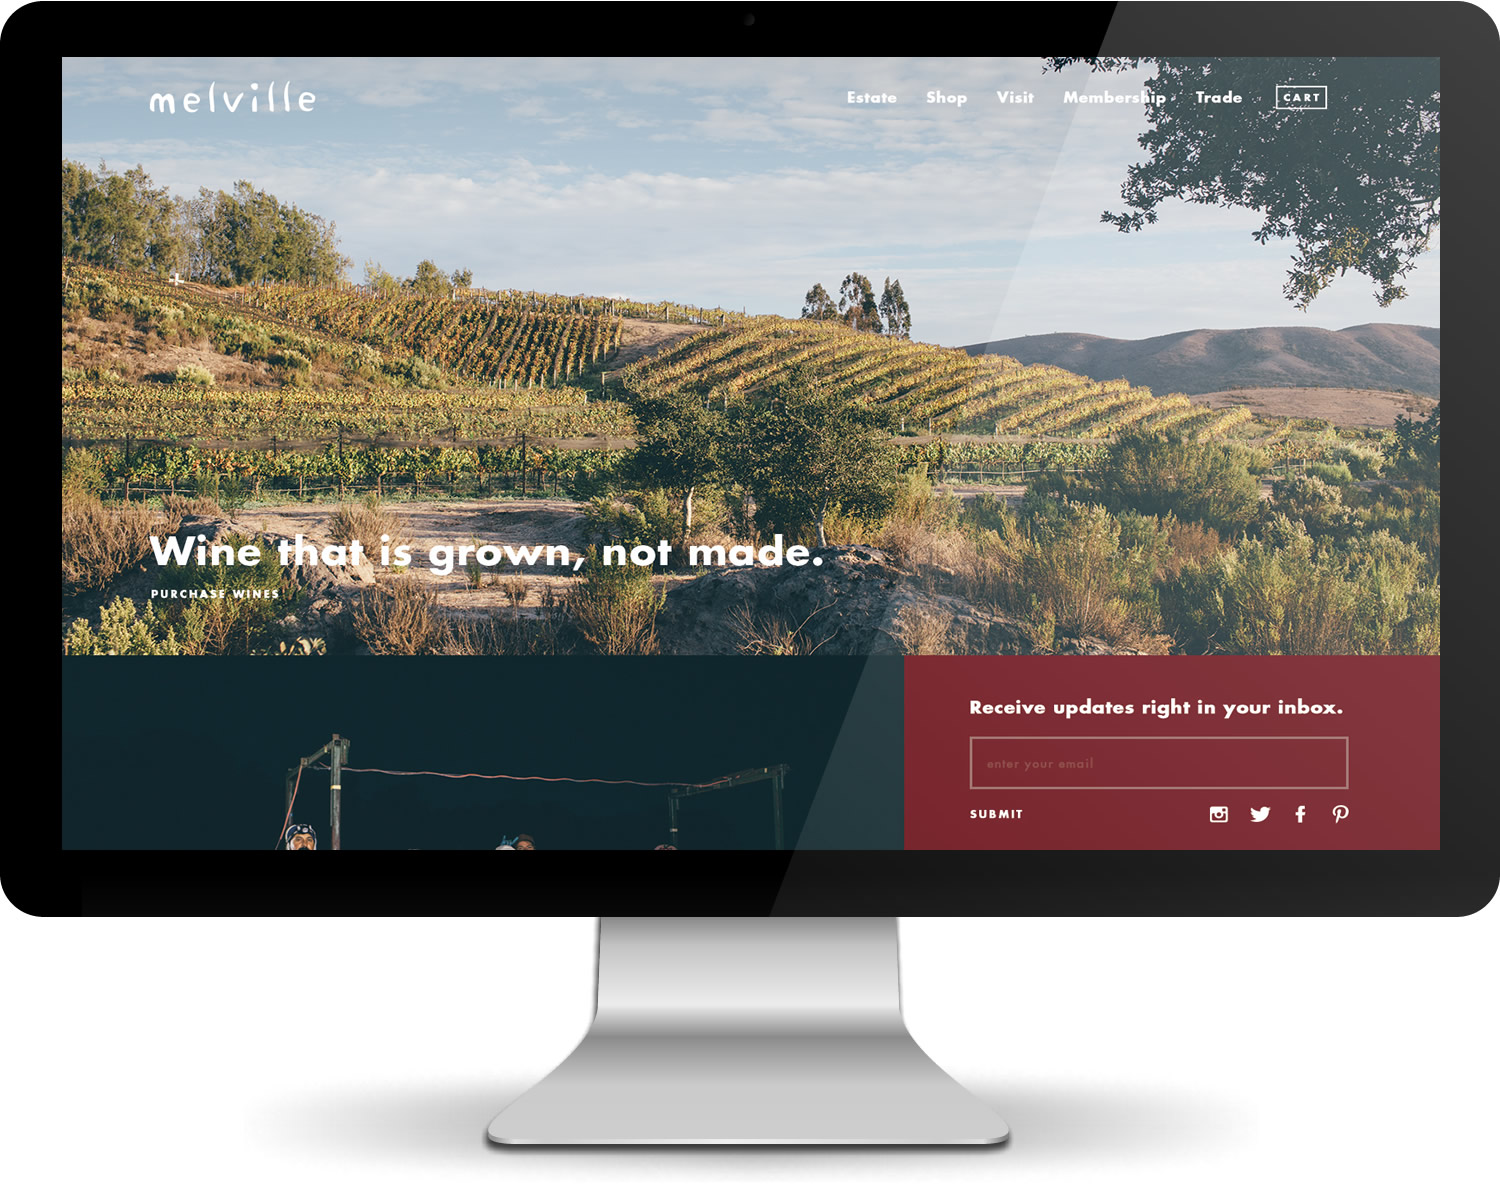 Leo-Basica-design-melville-winery-web-design